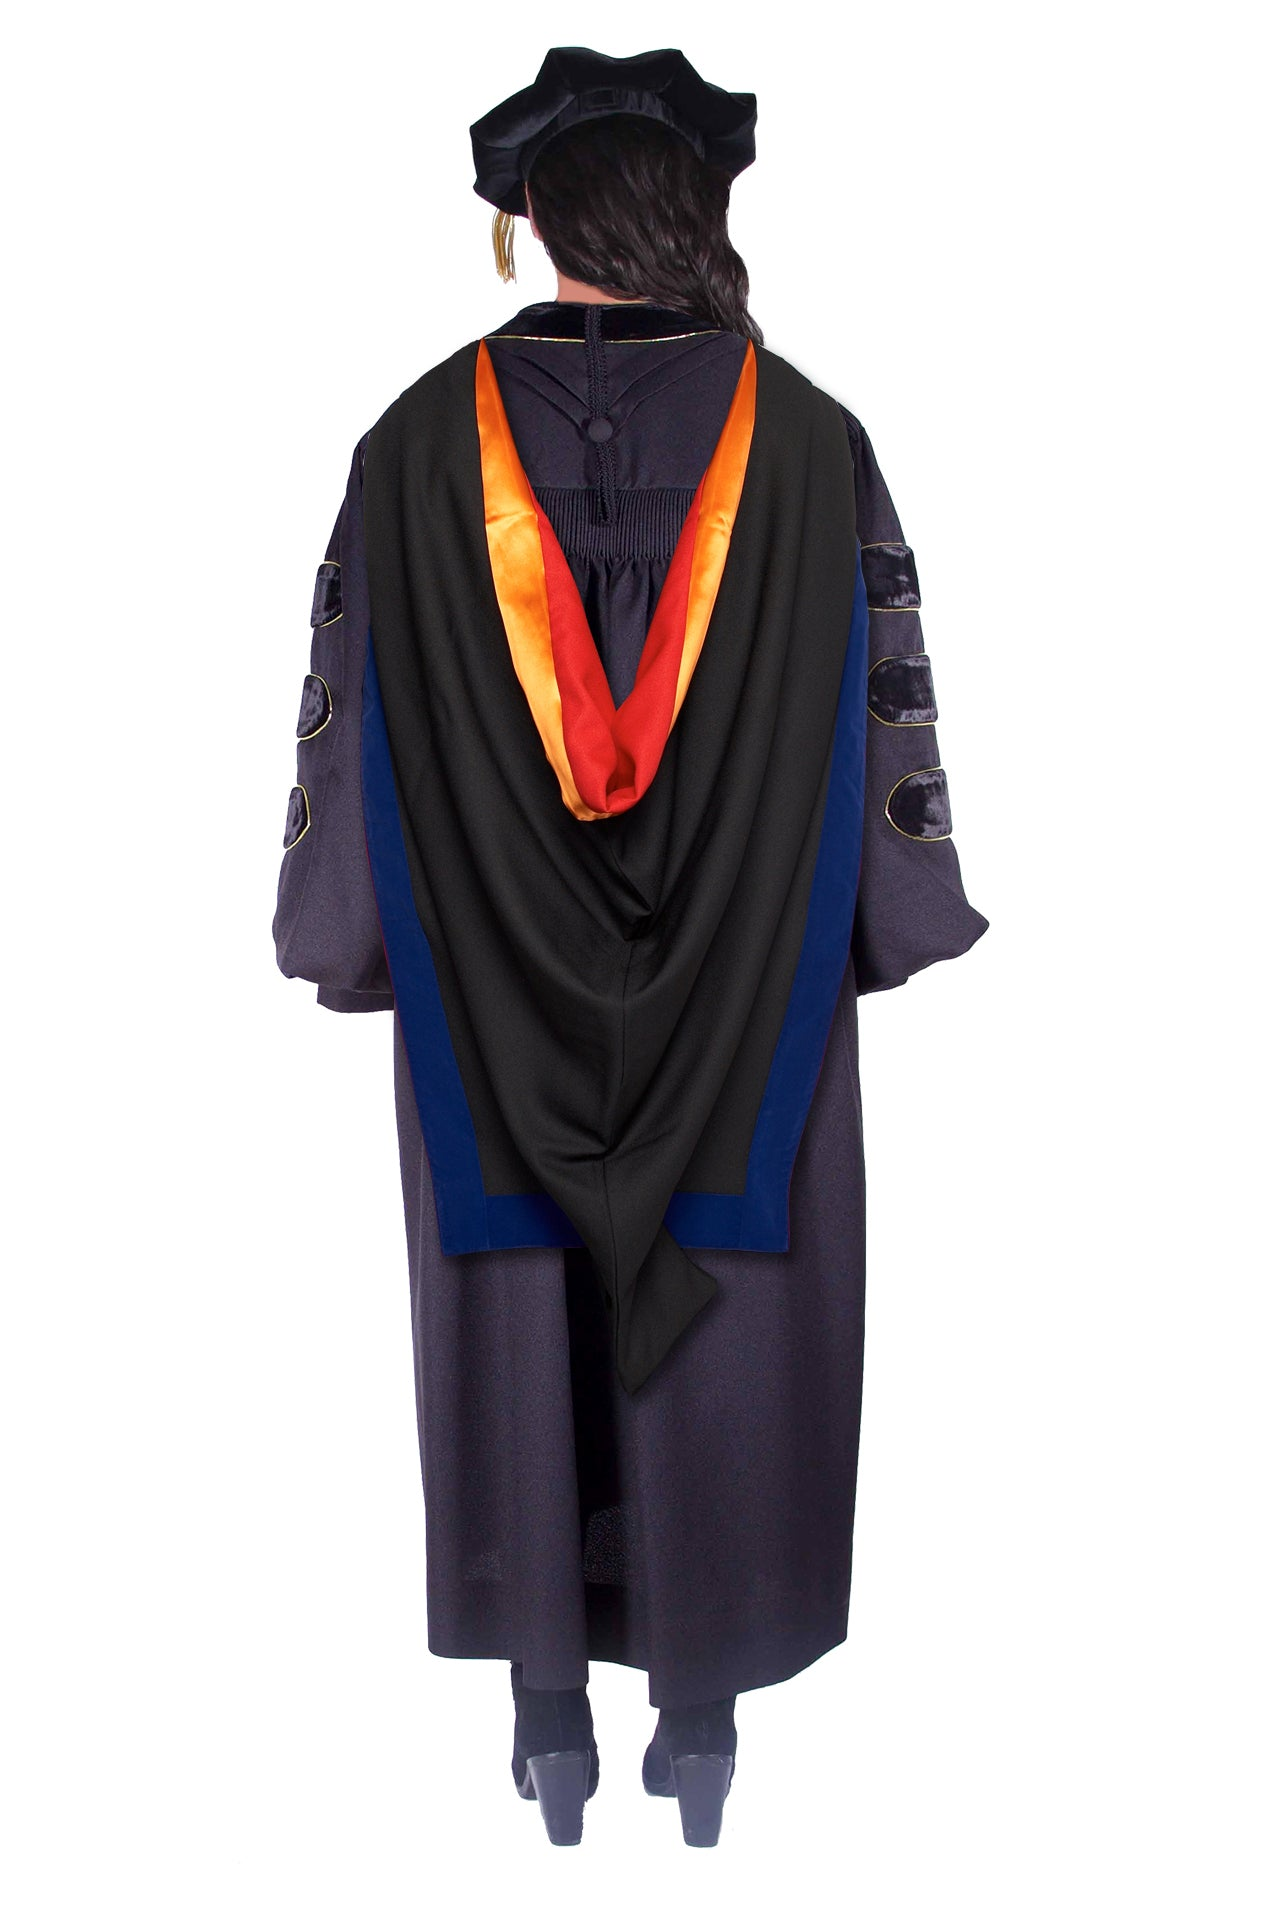 Stanford Complete Doctoral Regalia Rental Set - Gown, Hood, and Cap